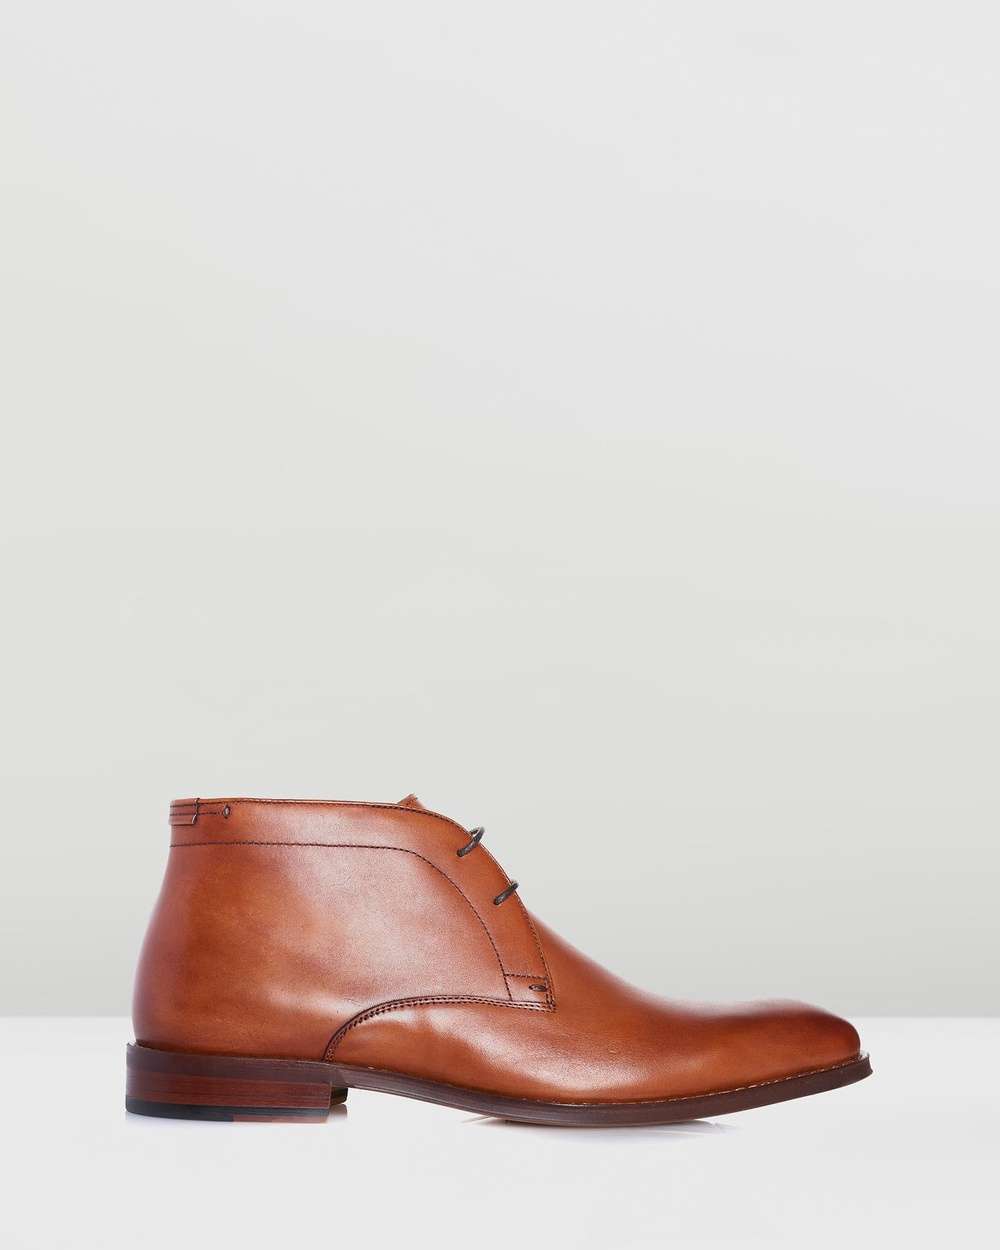 3 Wise Men The Ozzy Boots Tan